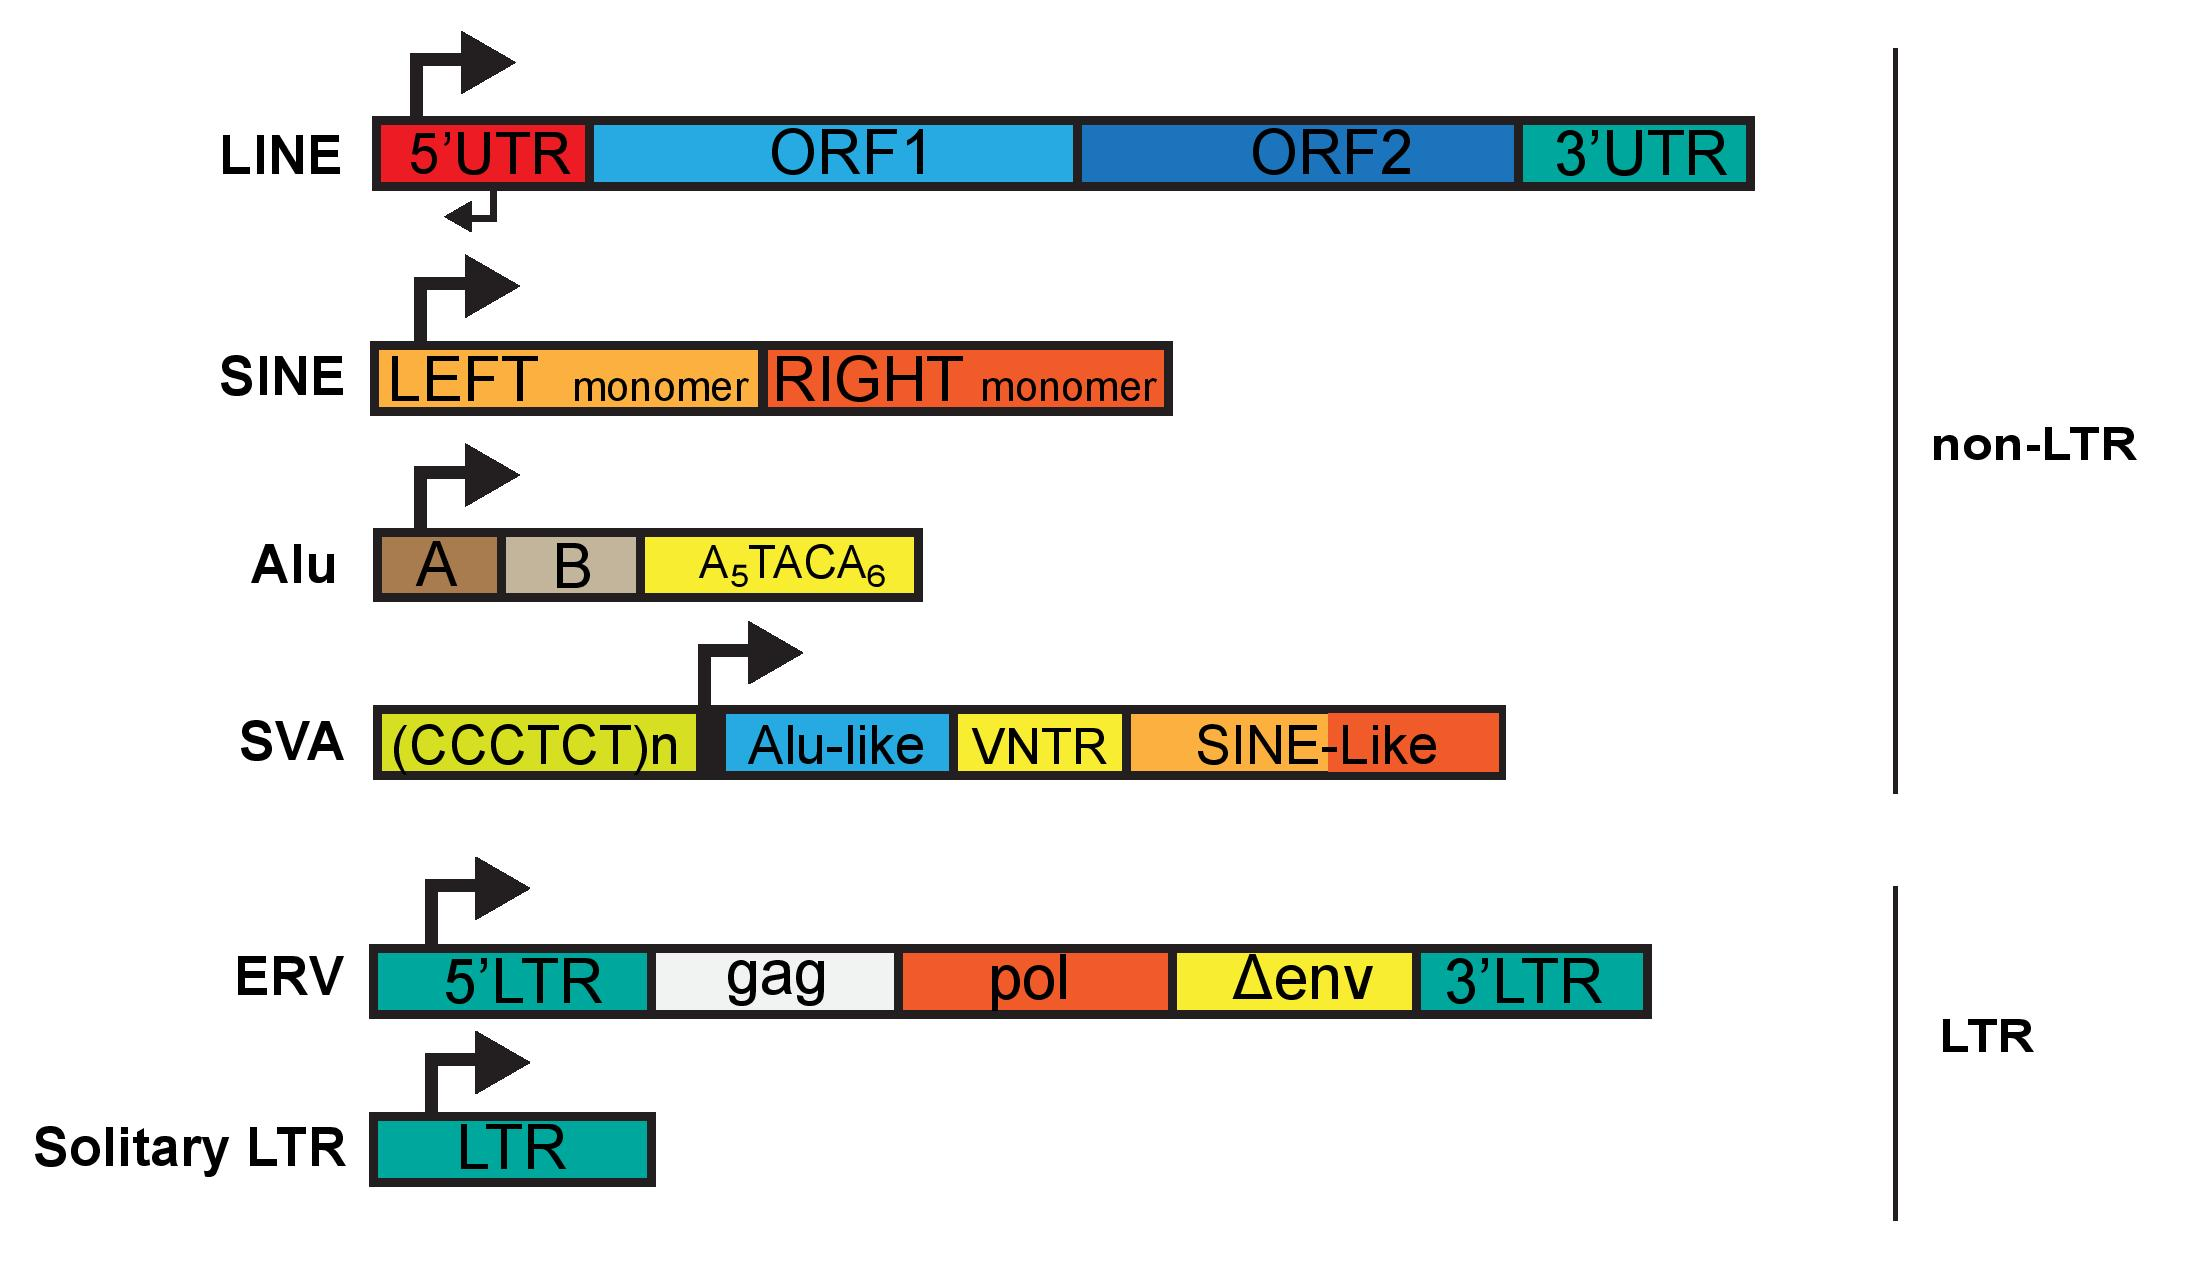 Figure 2. Sequence architecture of mammalian LTR and Non-LTR transposable elements. Schematic diagram of non-LTR retrotransposons and LTR retrotransposons. Non-LTR transposons include Long INterspersed Elements (LINEs), Short INterspersed Elements (SINEs) such as Alu (primates) and SVA elements (primates). LTR retrotransposons are resultant of past exogenous viral integration and are comprised of 5' and 3' Long terminal repeats (LTRs) and retroviral ORFs gag, pol and a truncated or mutated env. Recombination between 5' and 3' LTRs deletes the internal region, leaving behind a solo LTR which harbors regulatory regions and transcription factor binding sites (TFBSs).